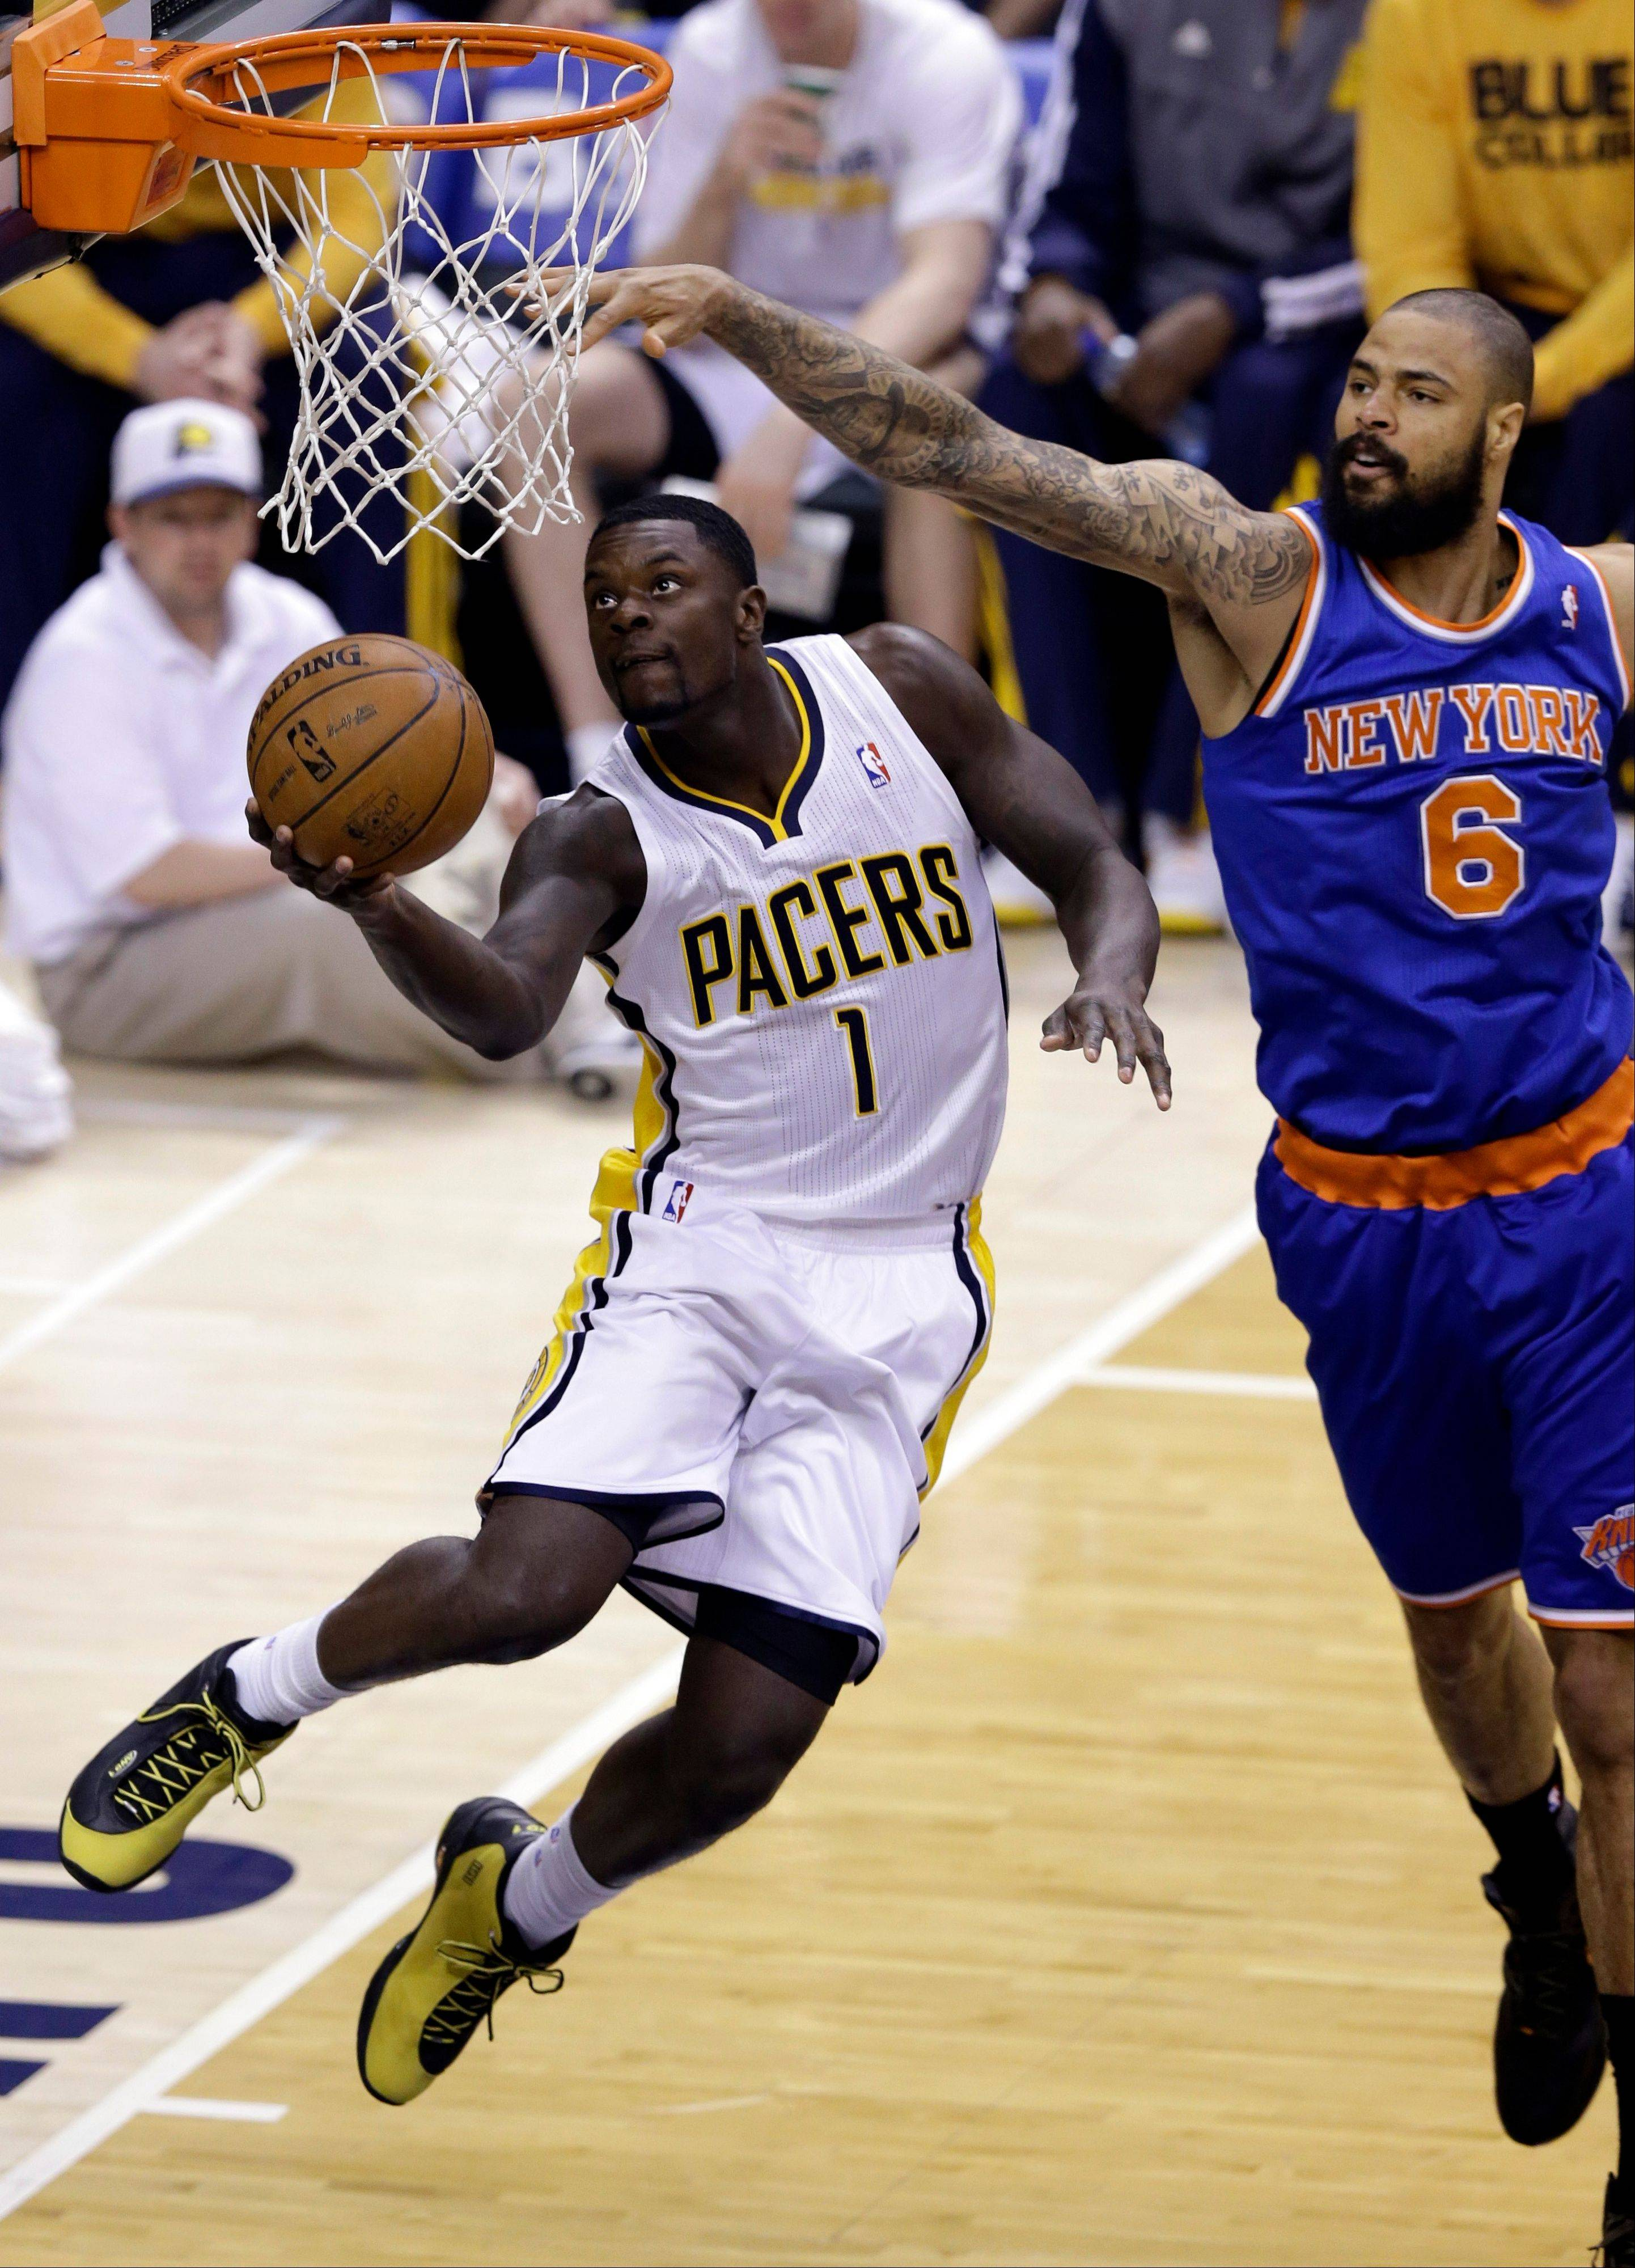 Indiana Pacers guard Lance Stephenson (1) gets a basket under New York Knicks center Tyson Chandler Saturday night during Game 6 of the Eastern Conference semifinal NBA basketball playoff series in Indianapolis.